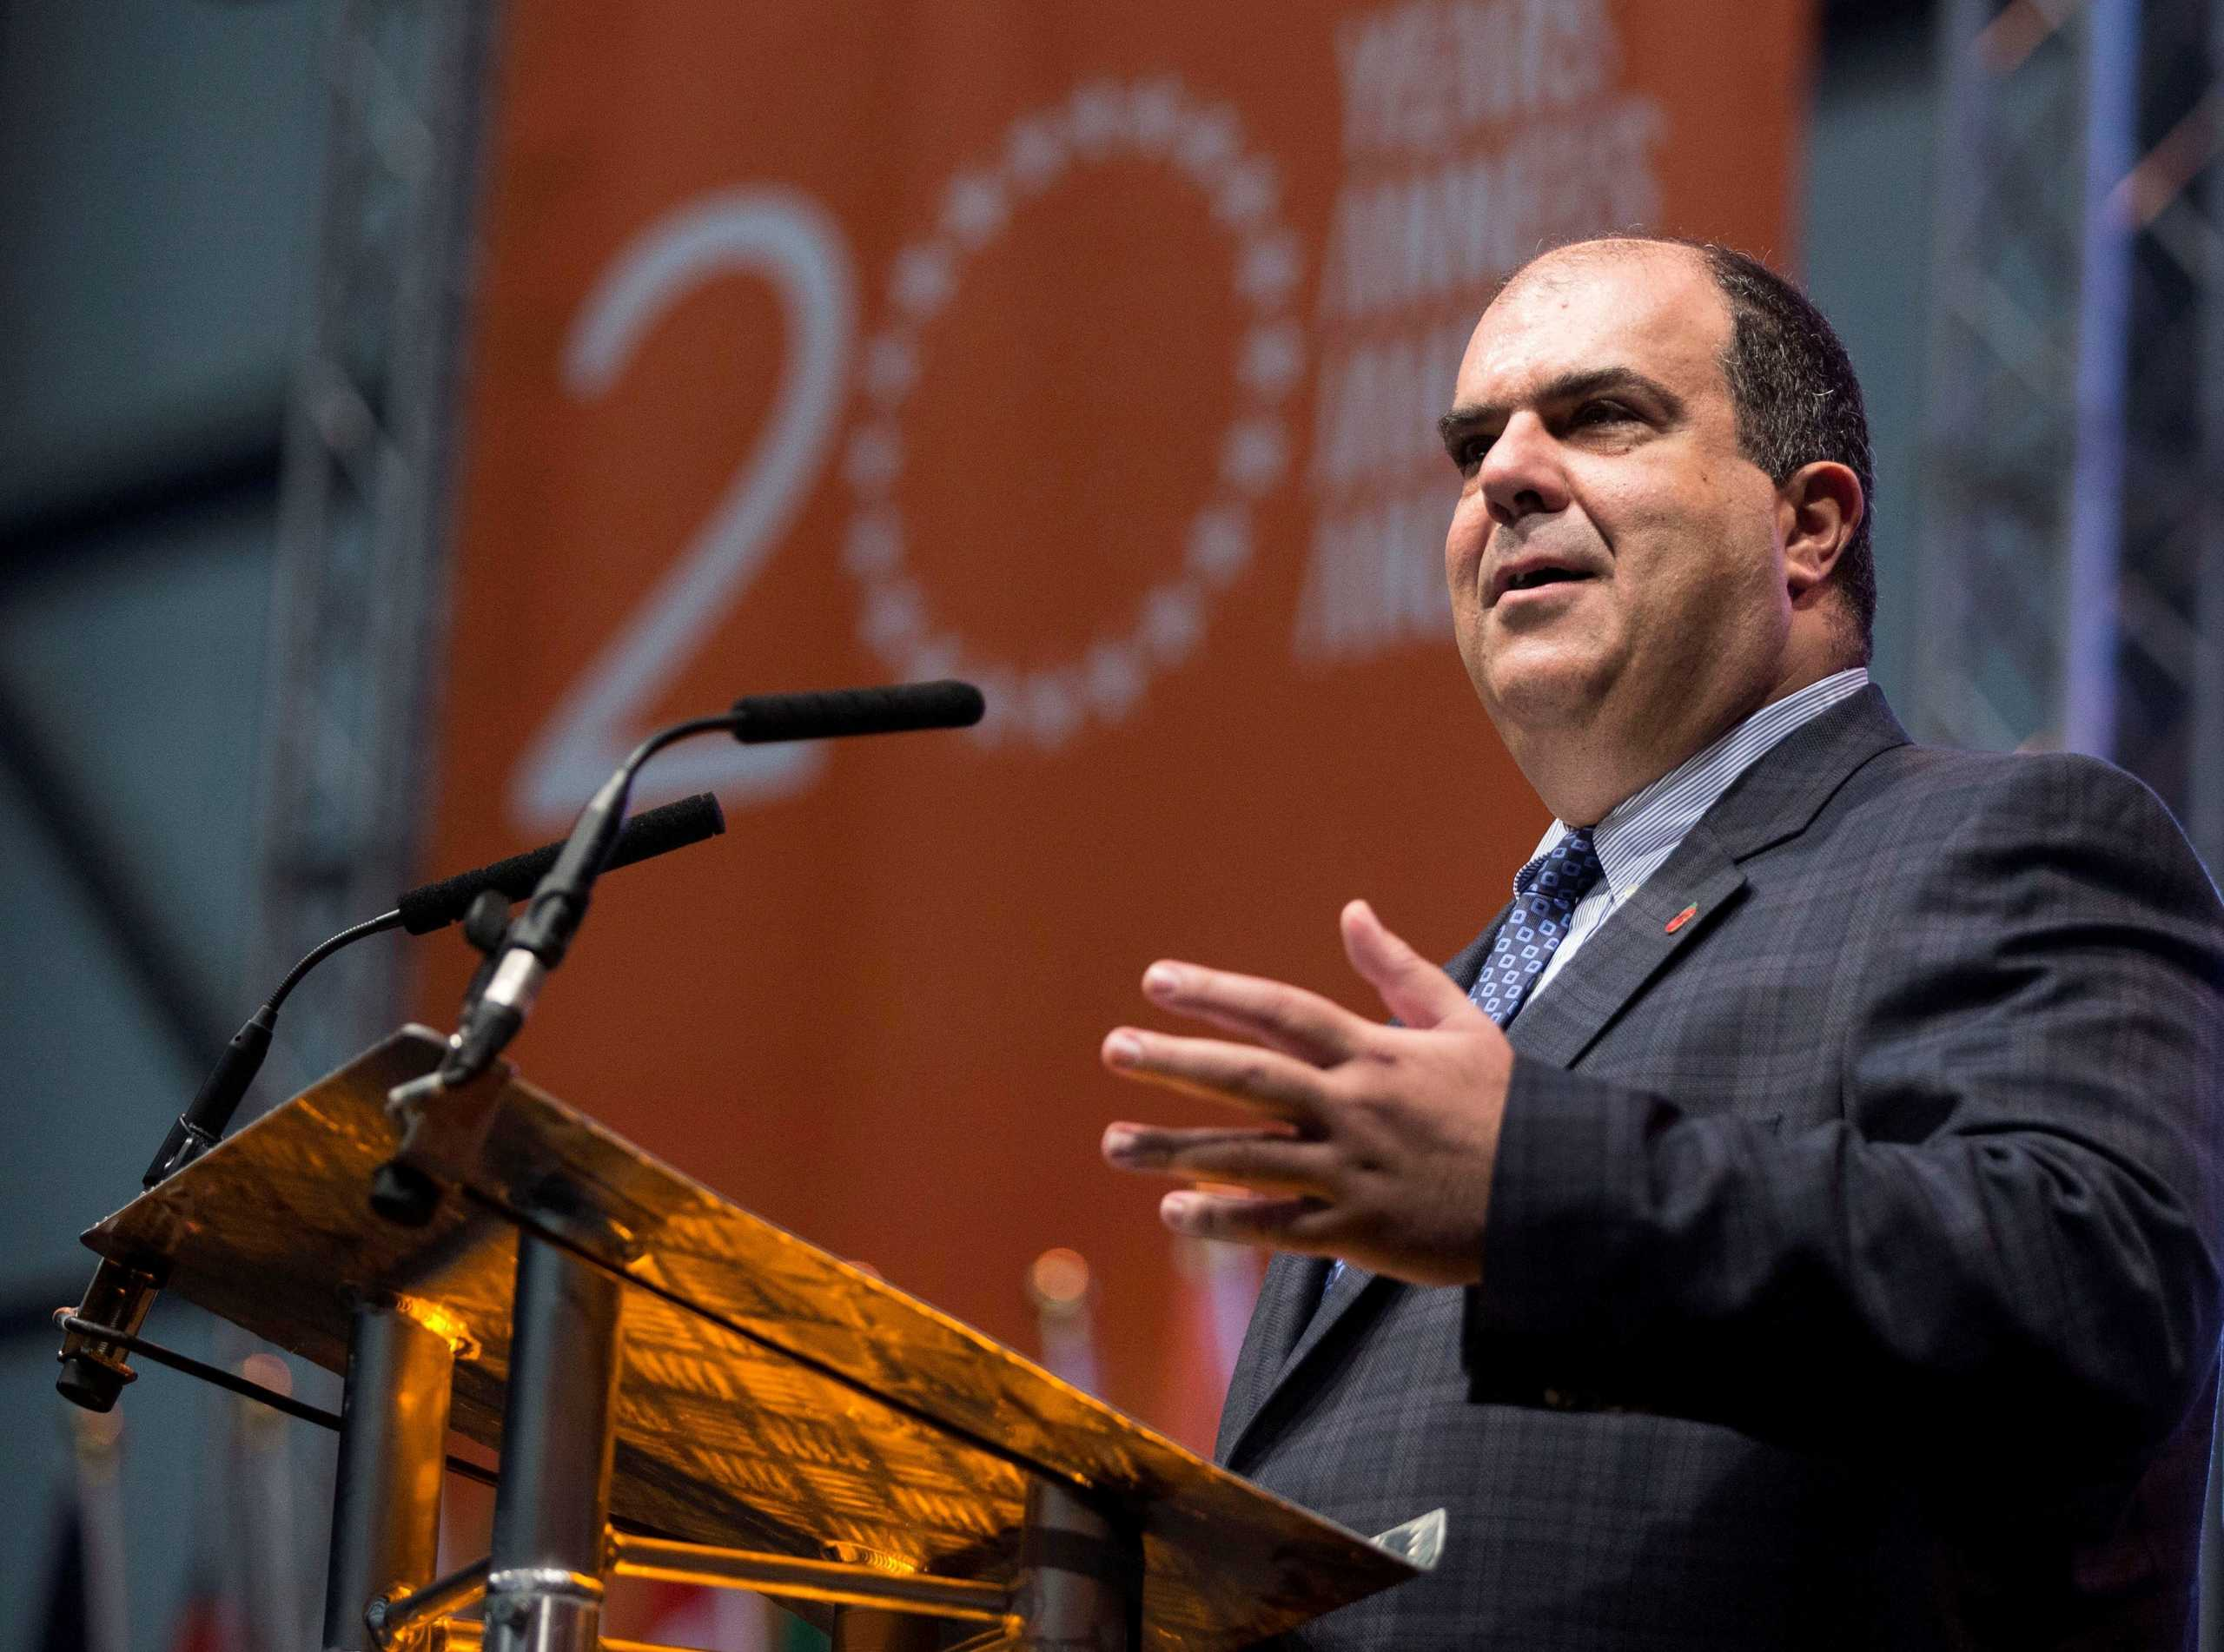 FILE PHOTO: Easyjet founder Stelios Haji-Ioannou speaks at a media event to celebrate 20 years in business at Luton Airport, southern England, November 10, 2015. REUTERS/Eddie Keogh/File Photo